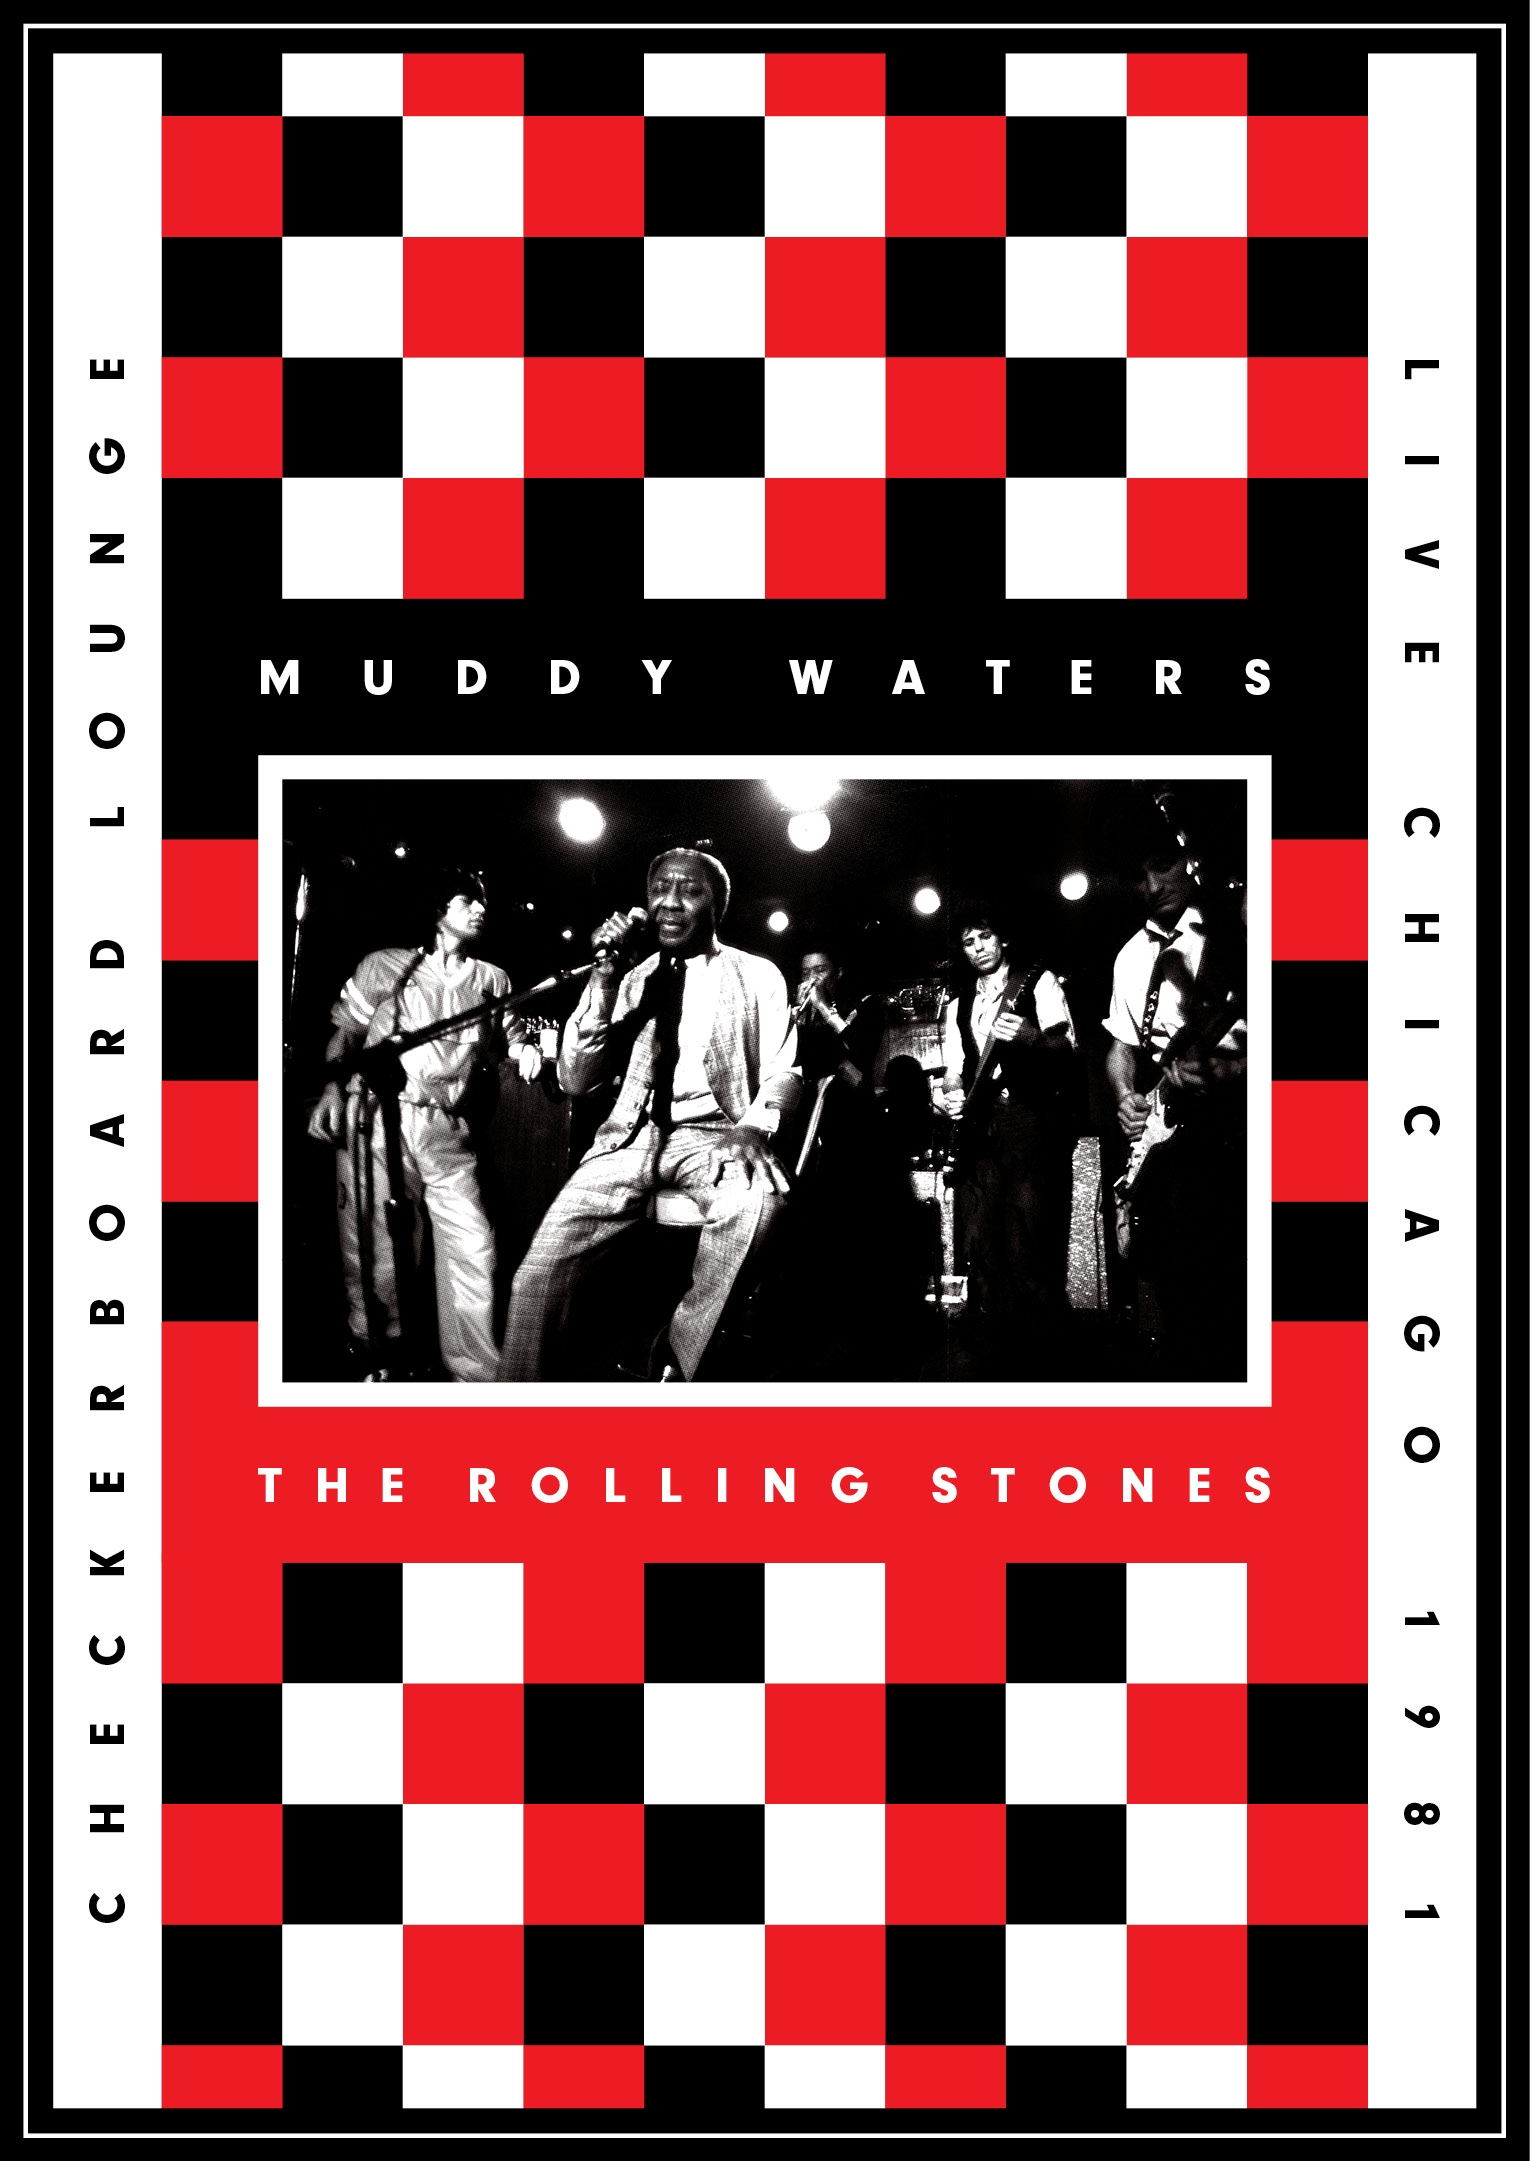 Muddy Waters & The Rolling Stones Live At The Checkerboard Lounge, Chicago 1981 DVD/CD by Eagle Rock Entertain